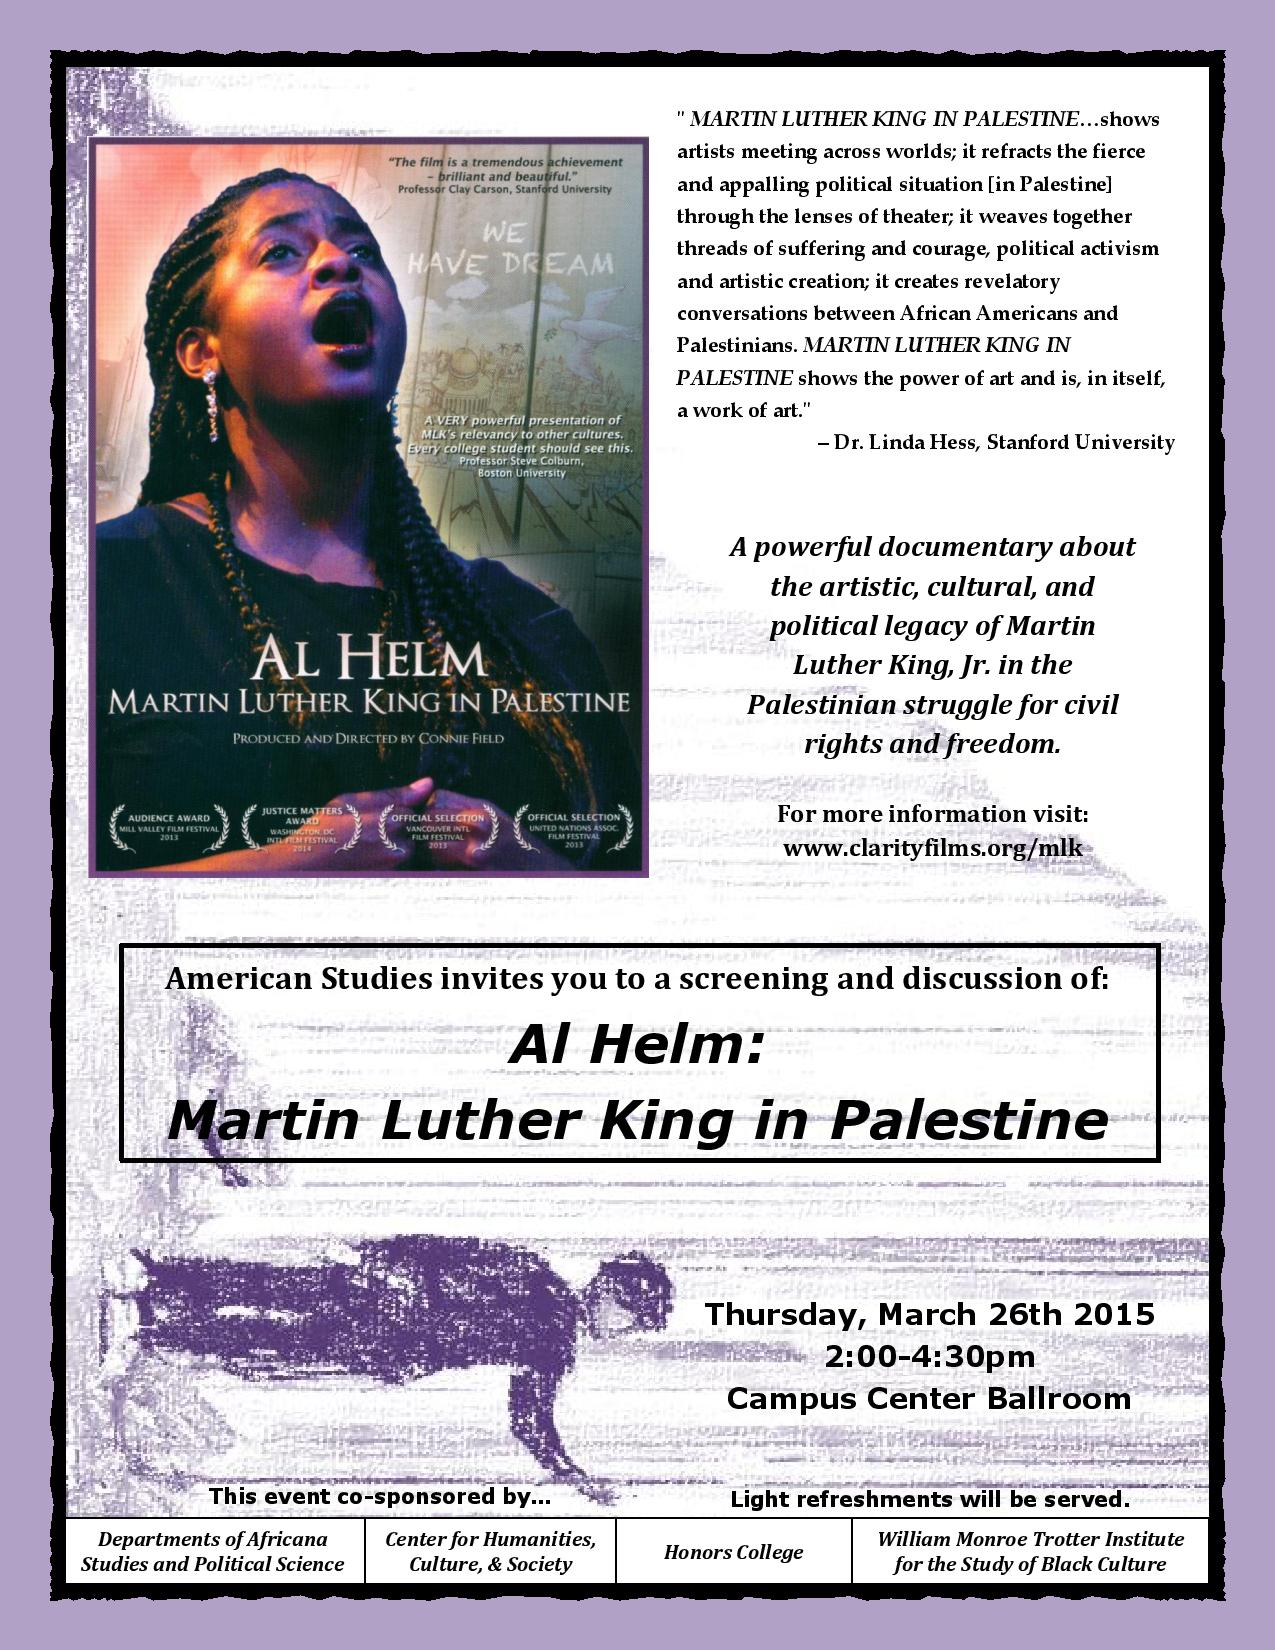 poster advertising a 2015 movie about Palestine - tiny not readable text.